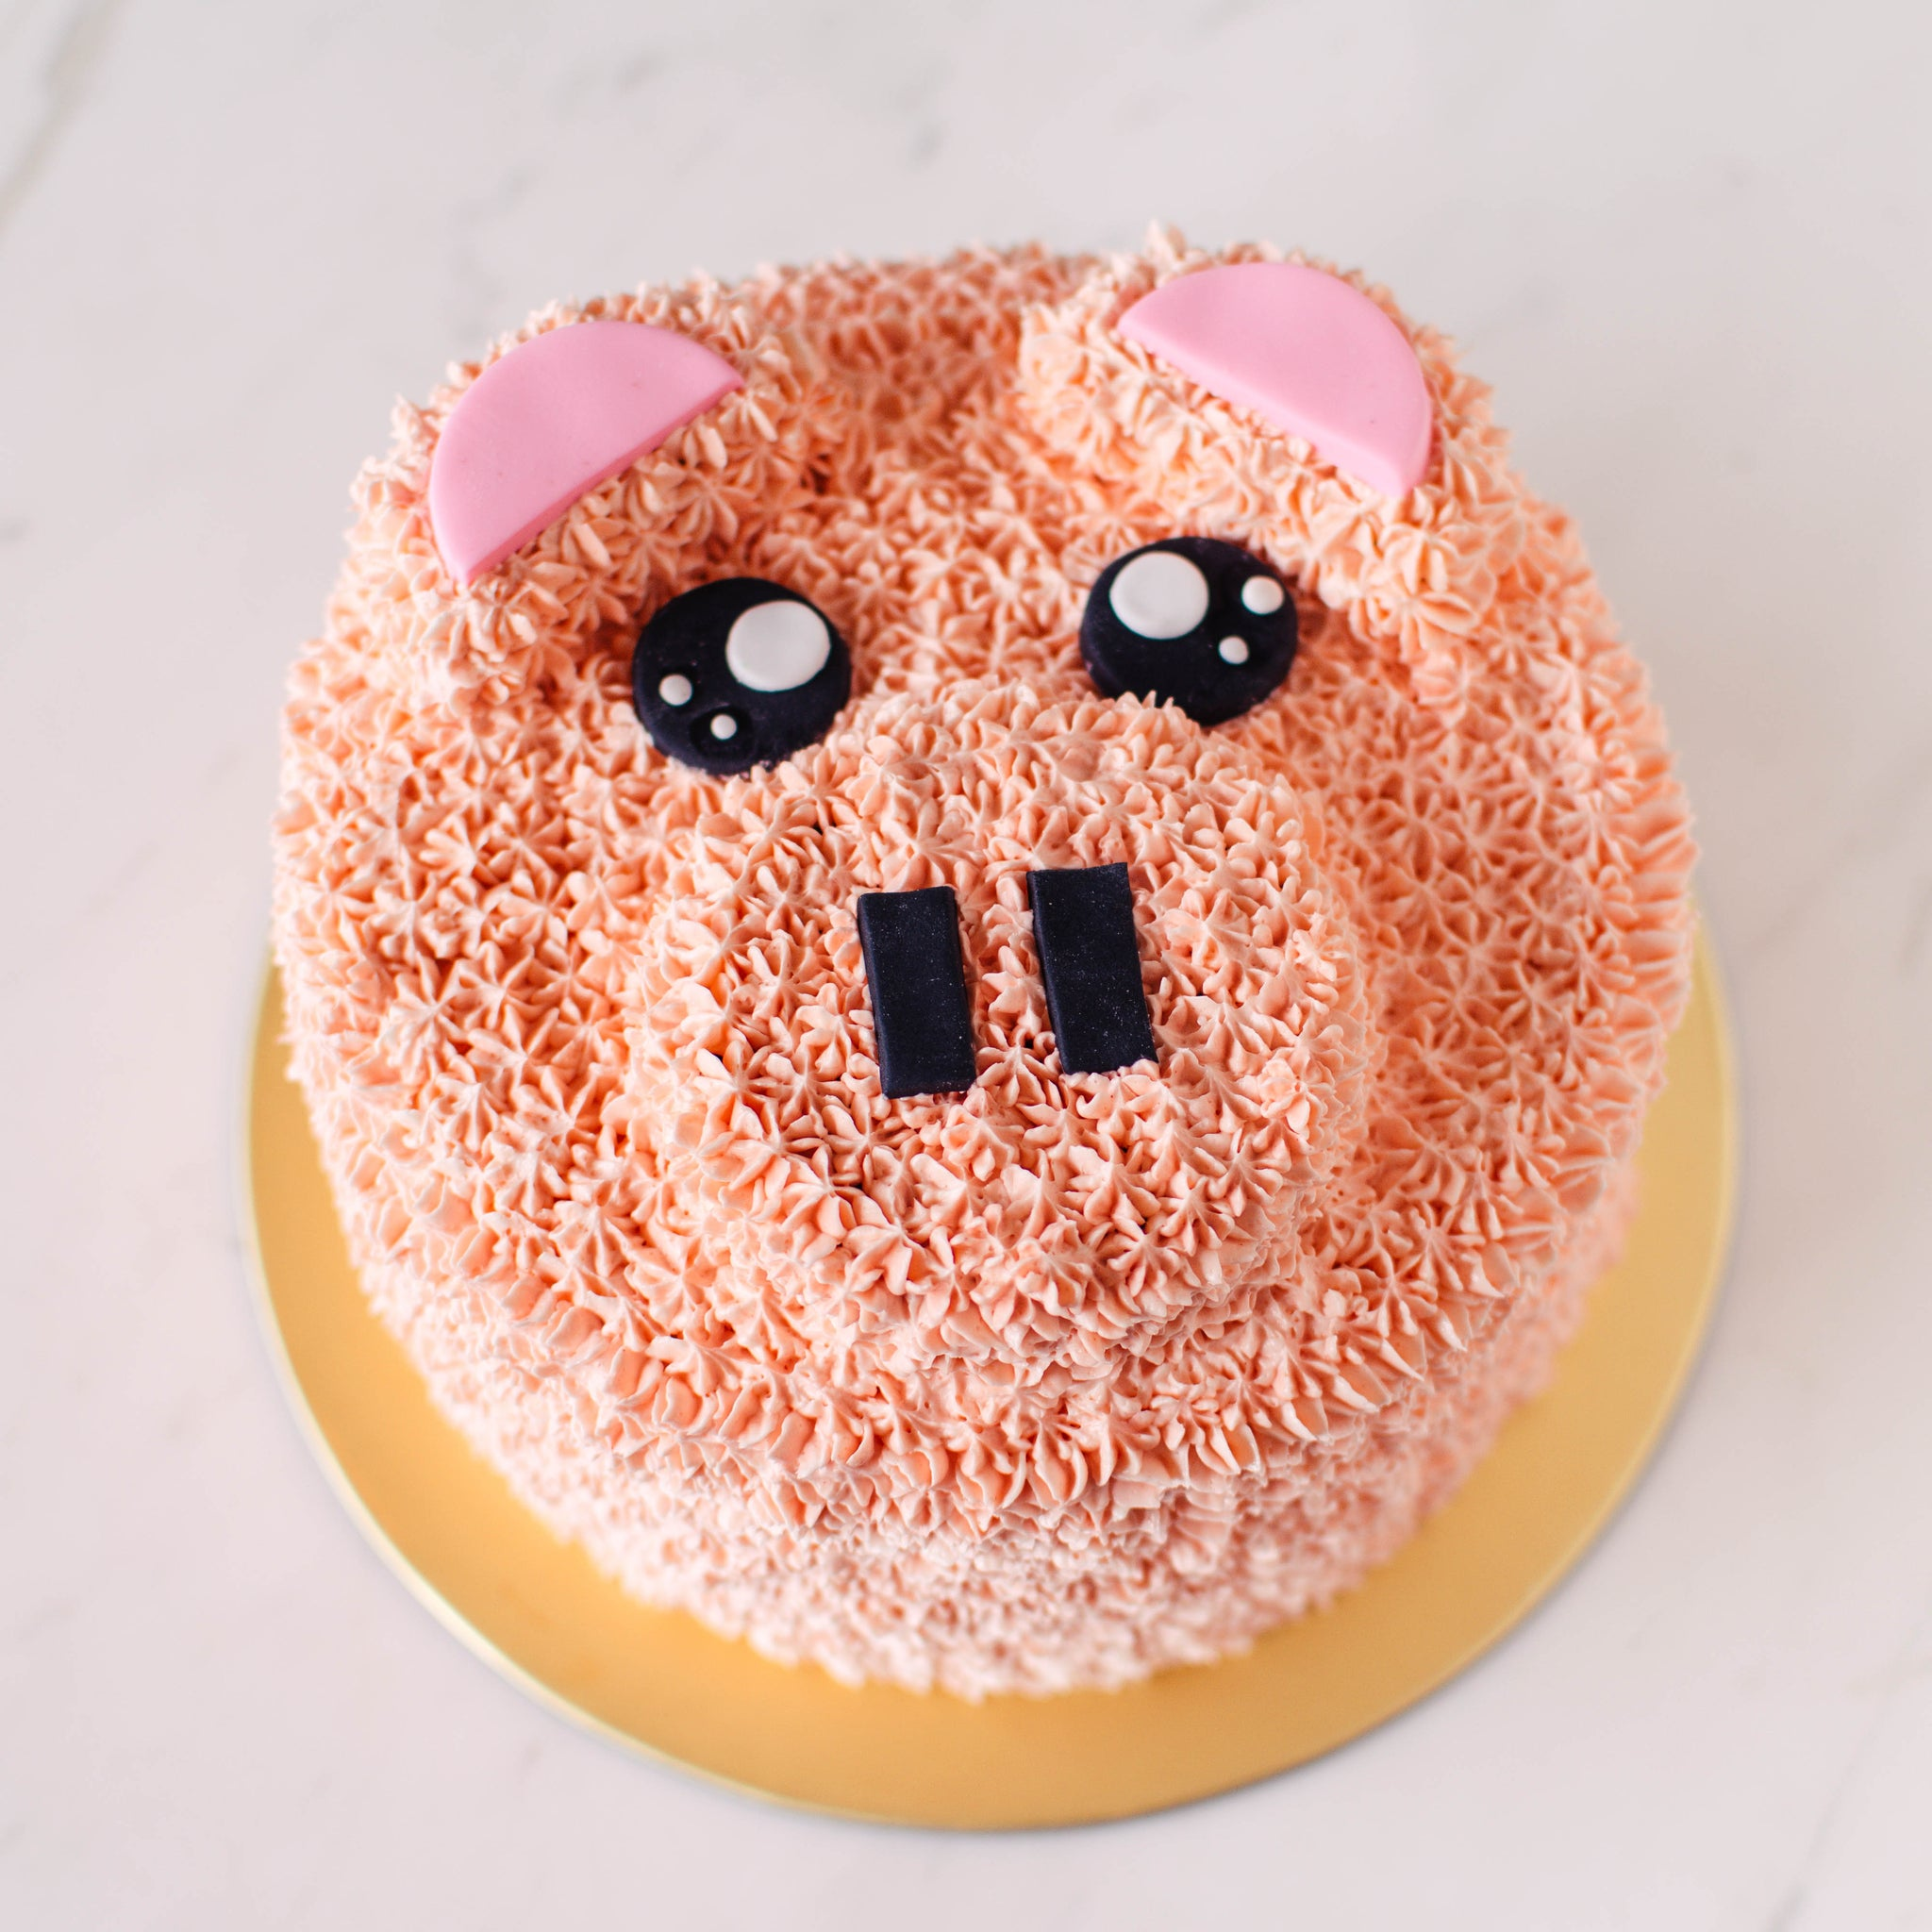 Buy Piggy Cake At Custom Bakes By Edith Patisserie For Only 5000